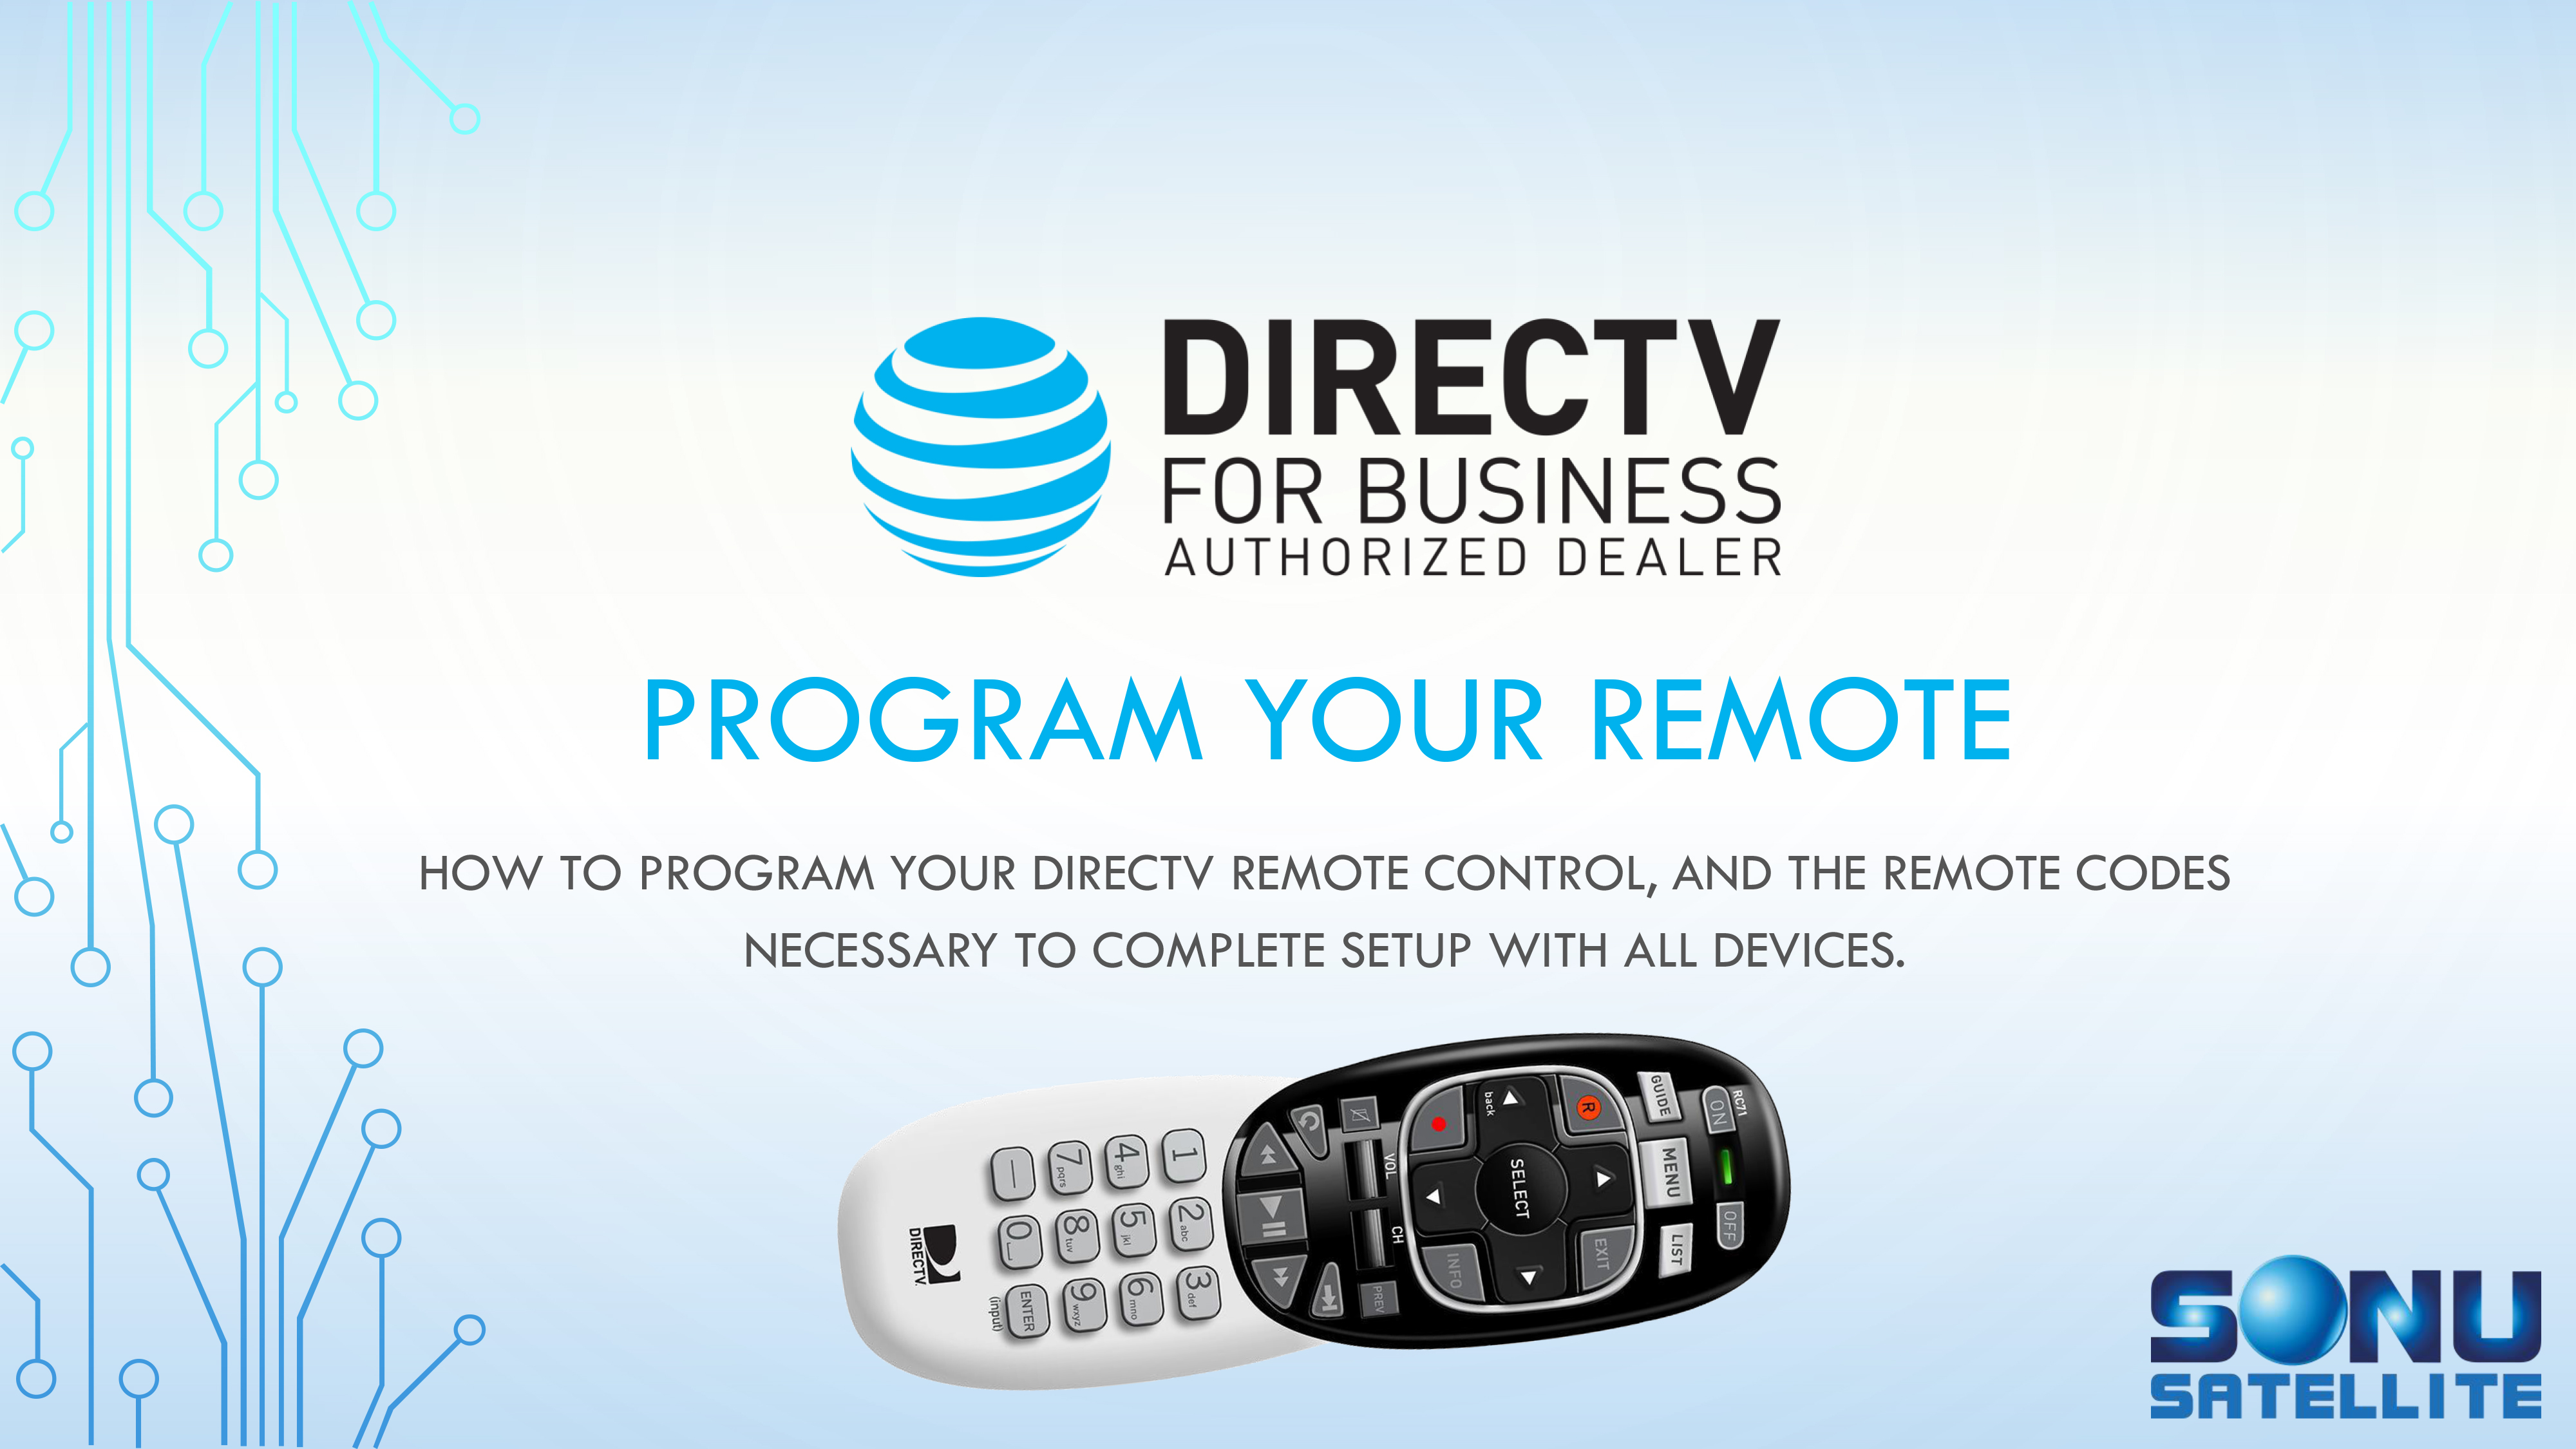 Directv Remote Codes For Business 877 999 7668